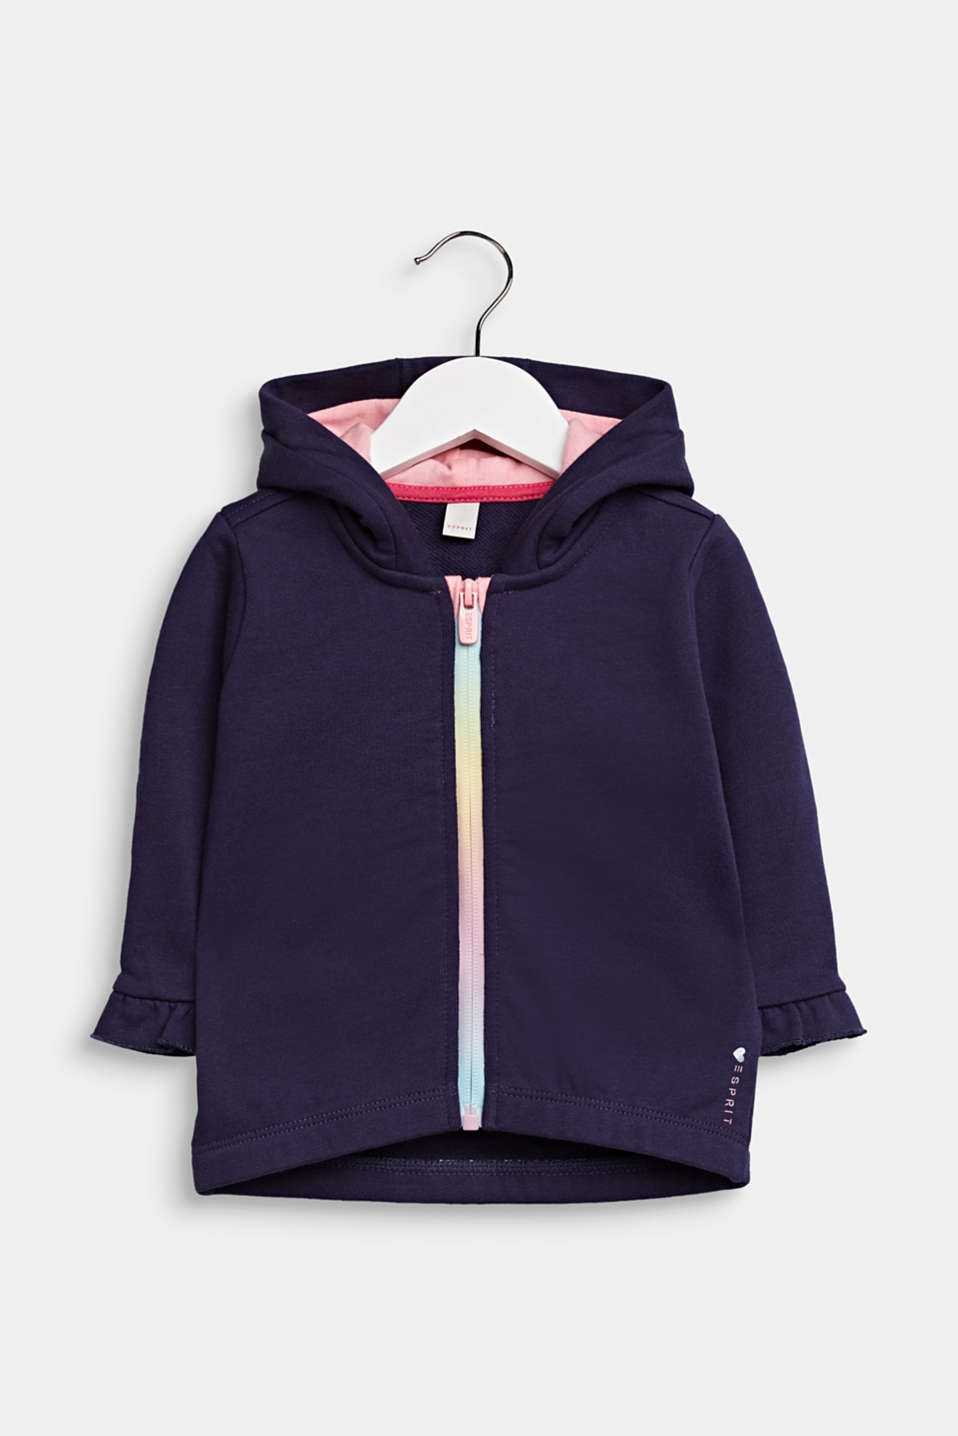 Sweatshirt cardigan with hood, 100% cotton, LCMIDNIGHT BLUE, detail image number 0